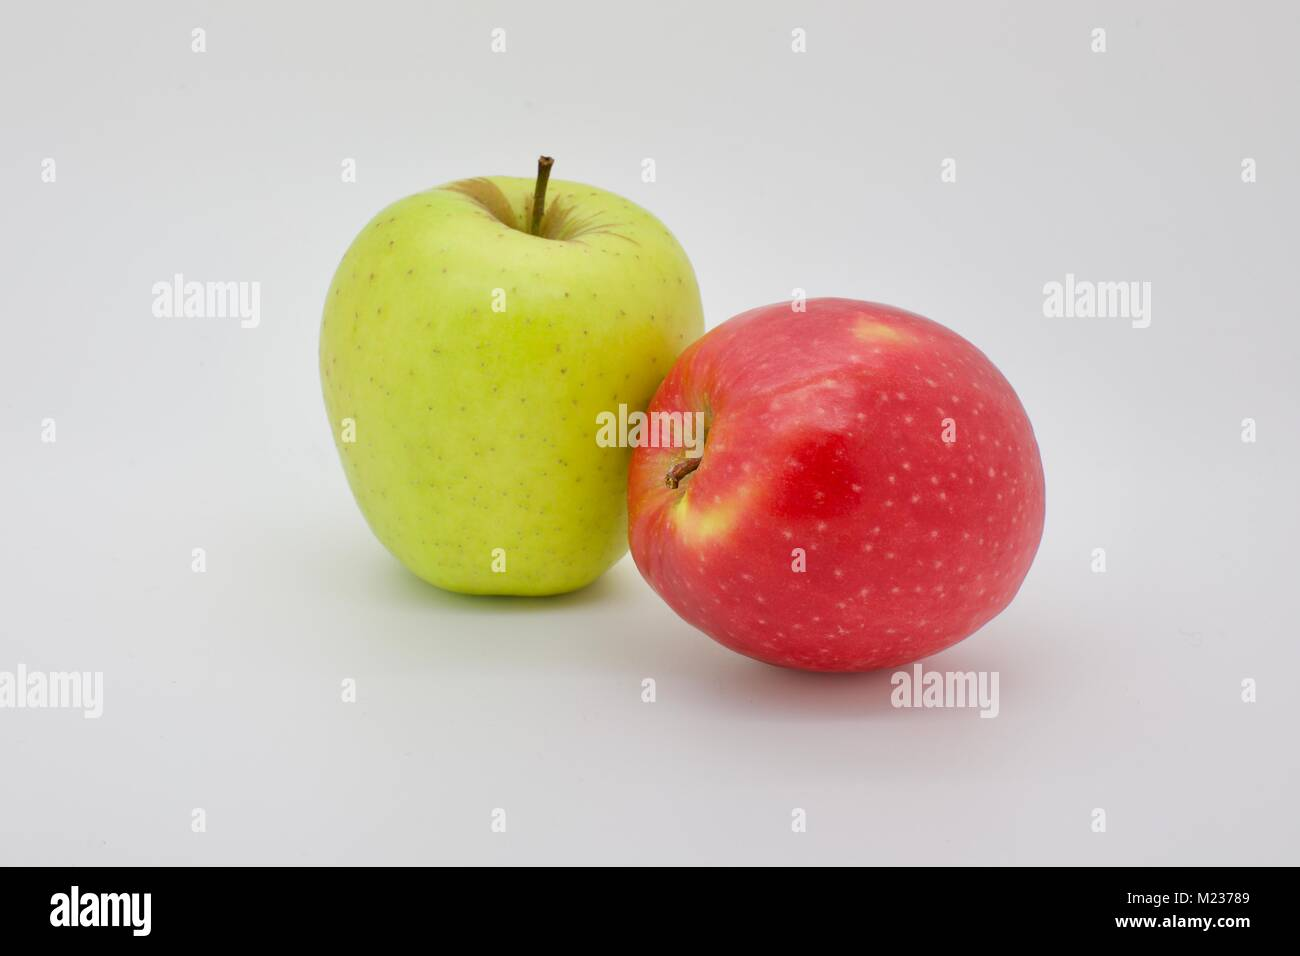 Two varieties of apples one Golden Delicious and a rosy red Jazz apple on a white background - Stock Image